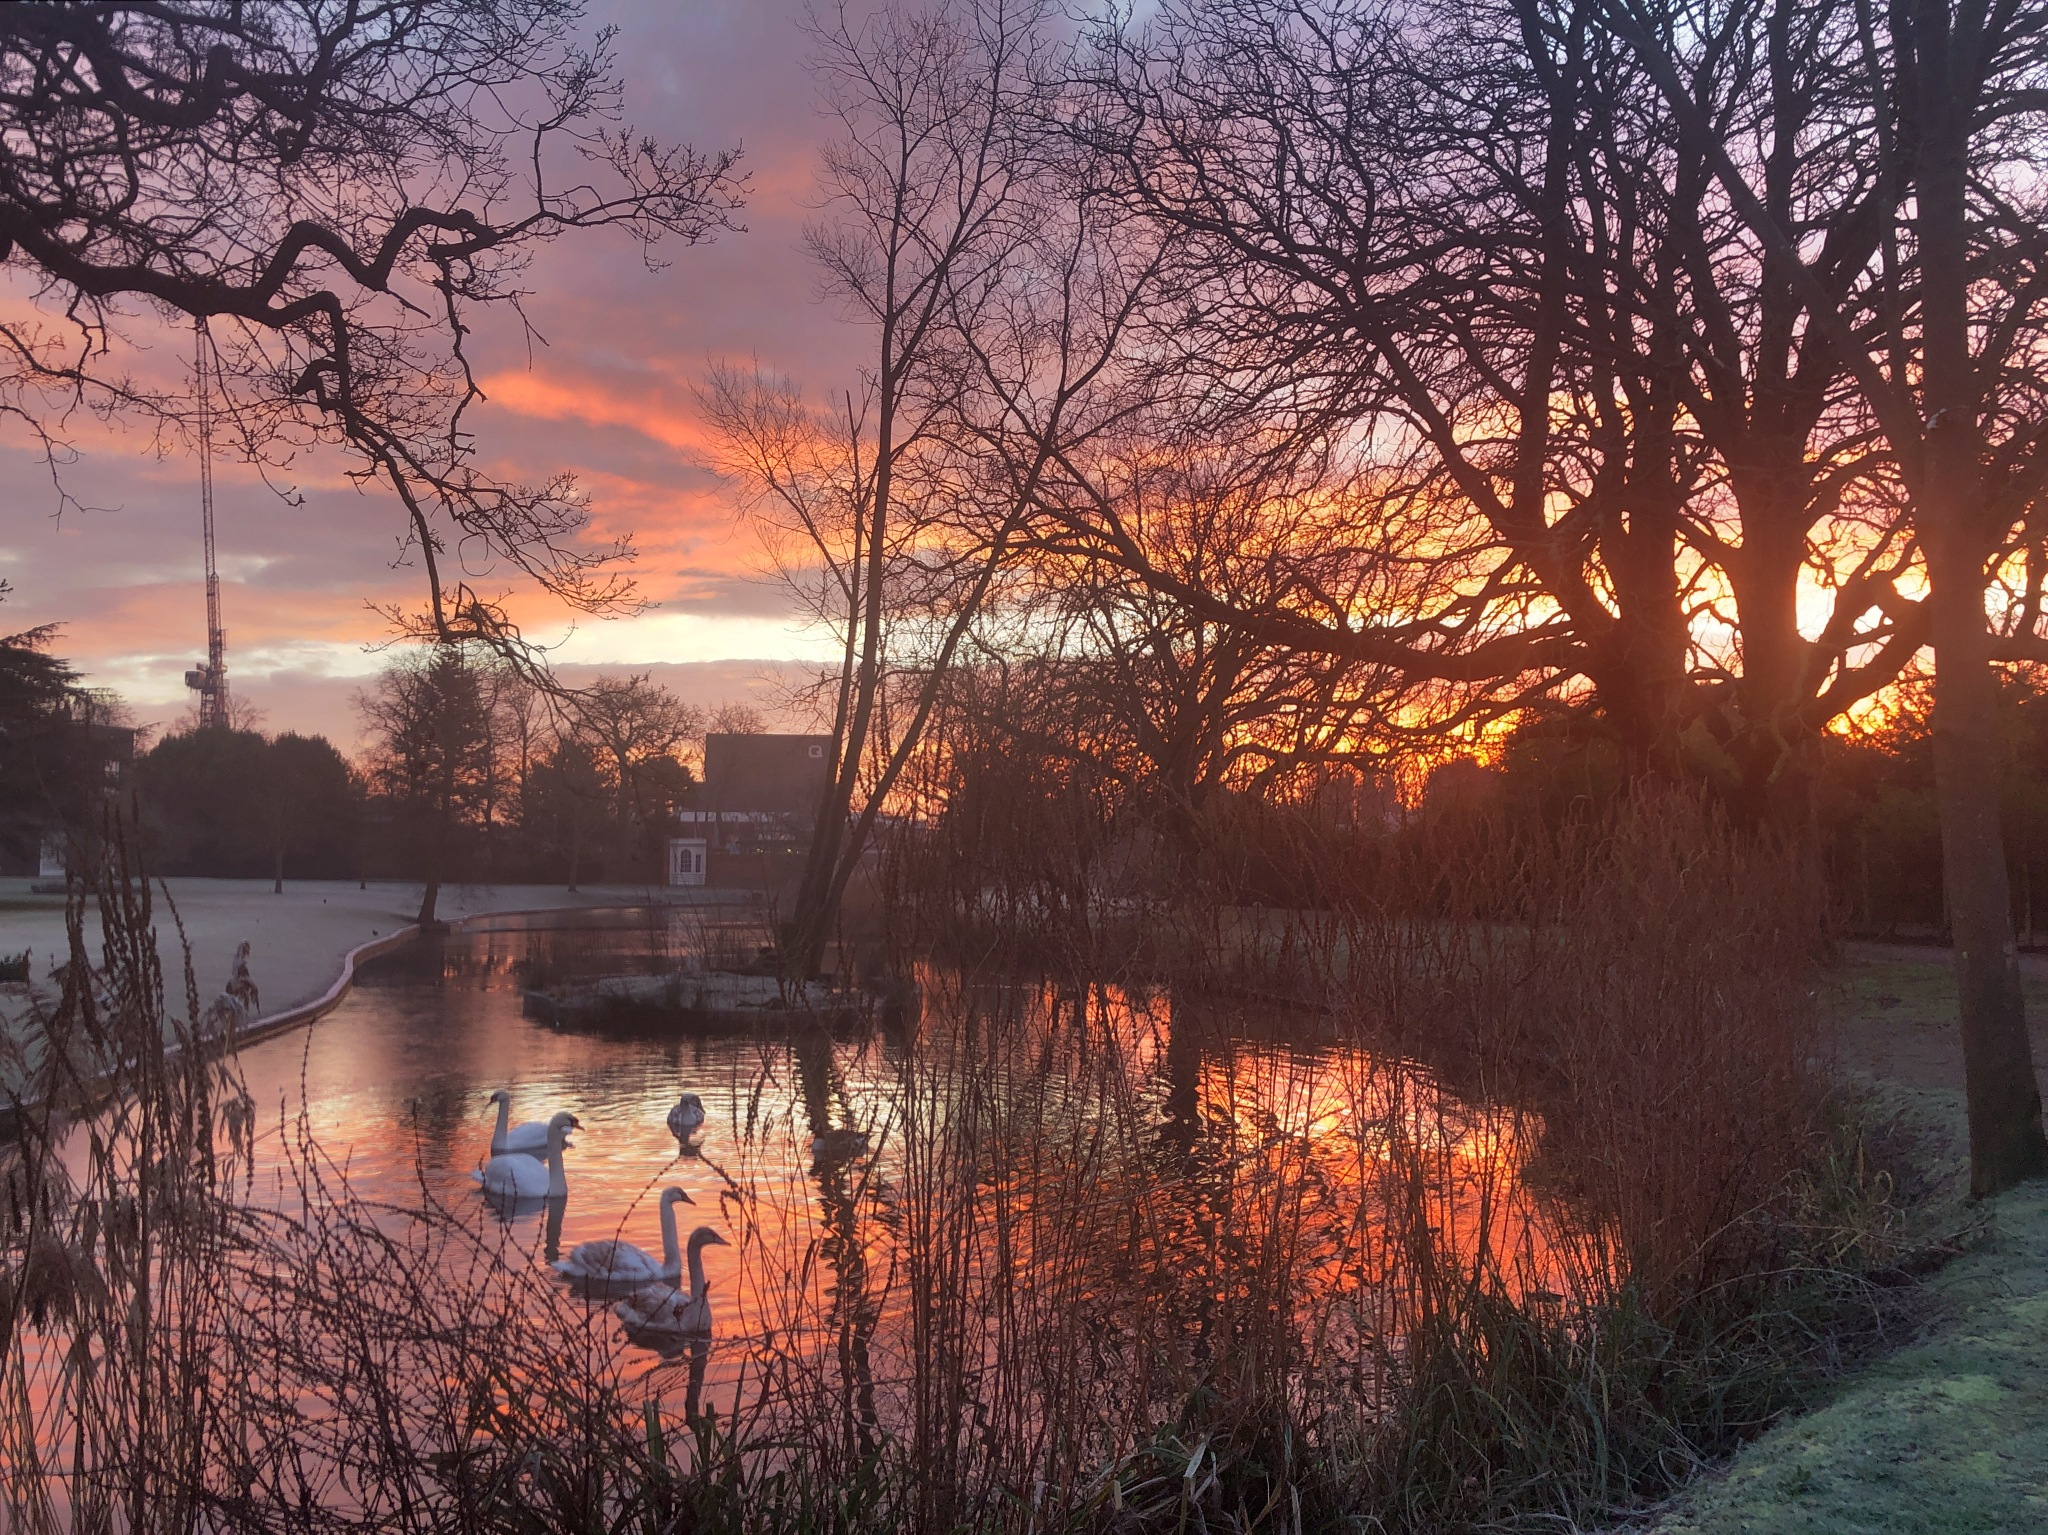 Sunrise at Langtons Gardens  by hartrockets